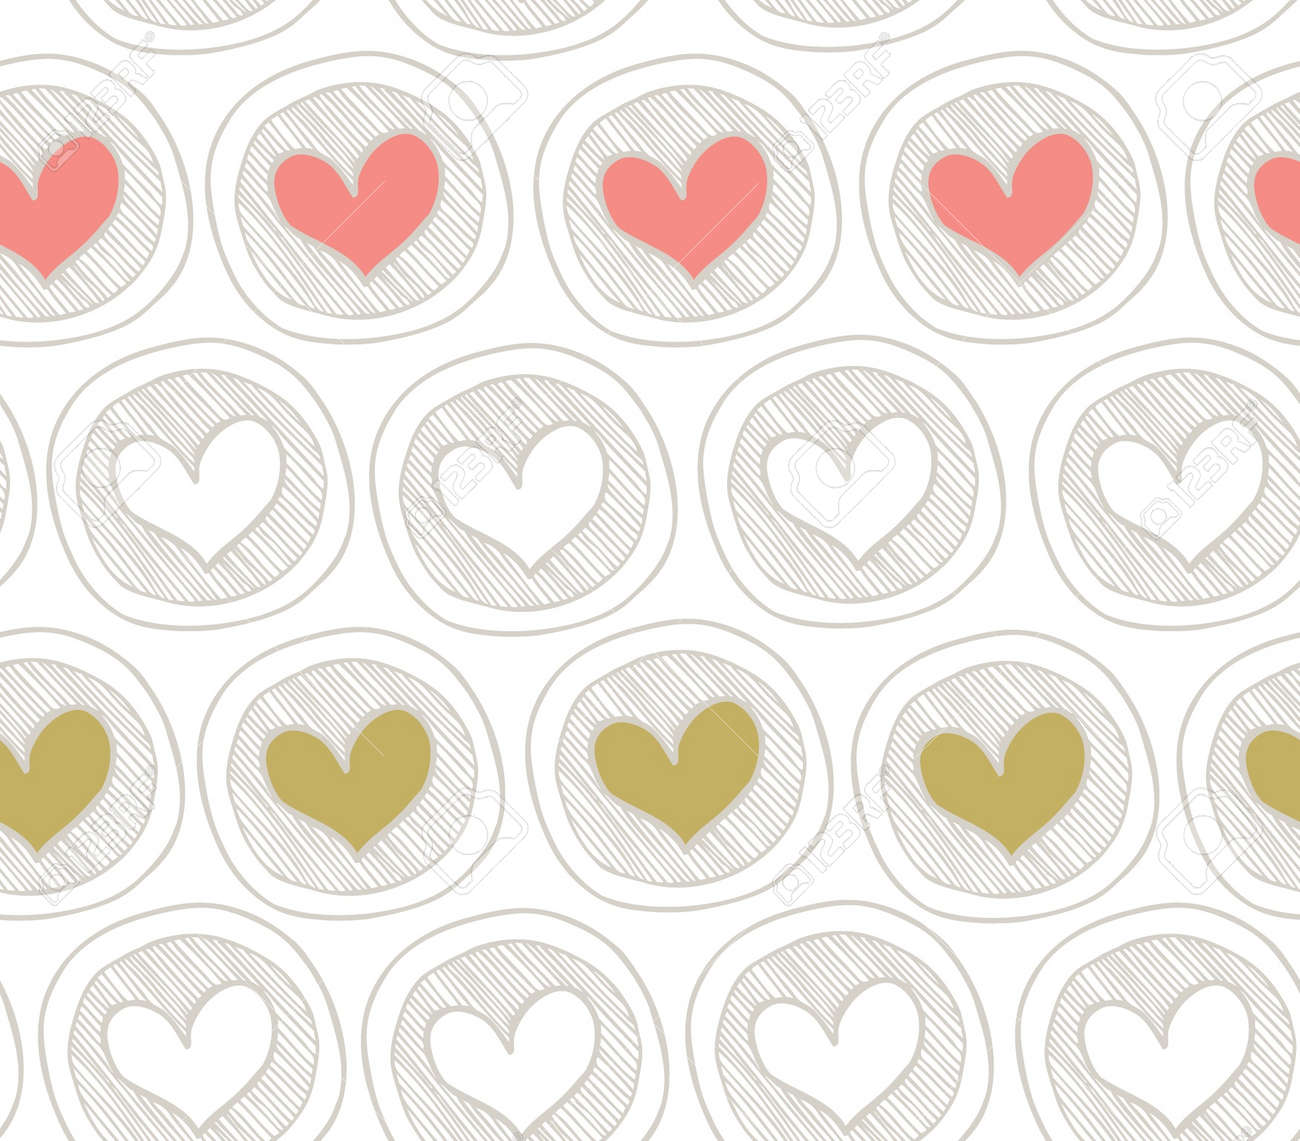 Brigth seamless pattern with hearts in circles. Abstract background with many decorative elements. Colorful cute texture Stock Vector - 15379985